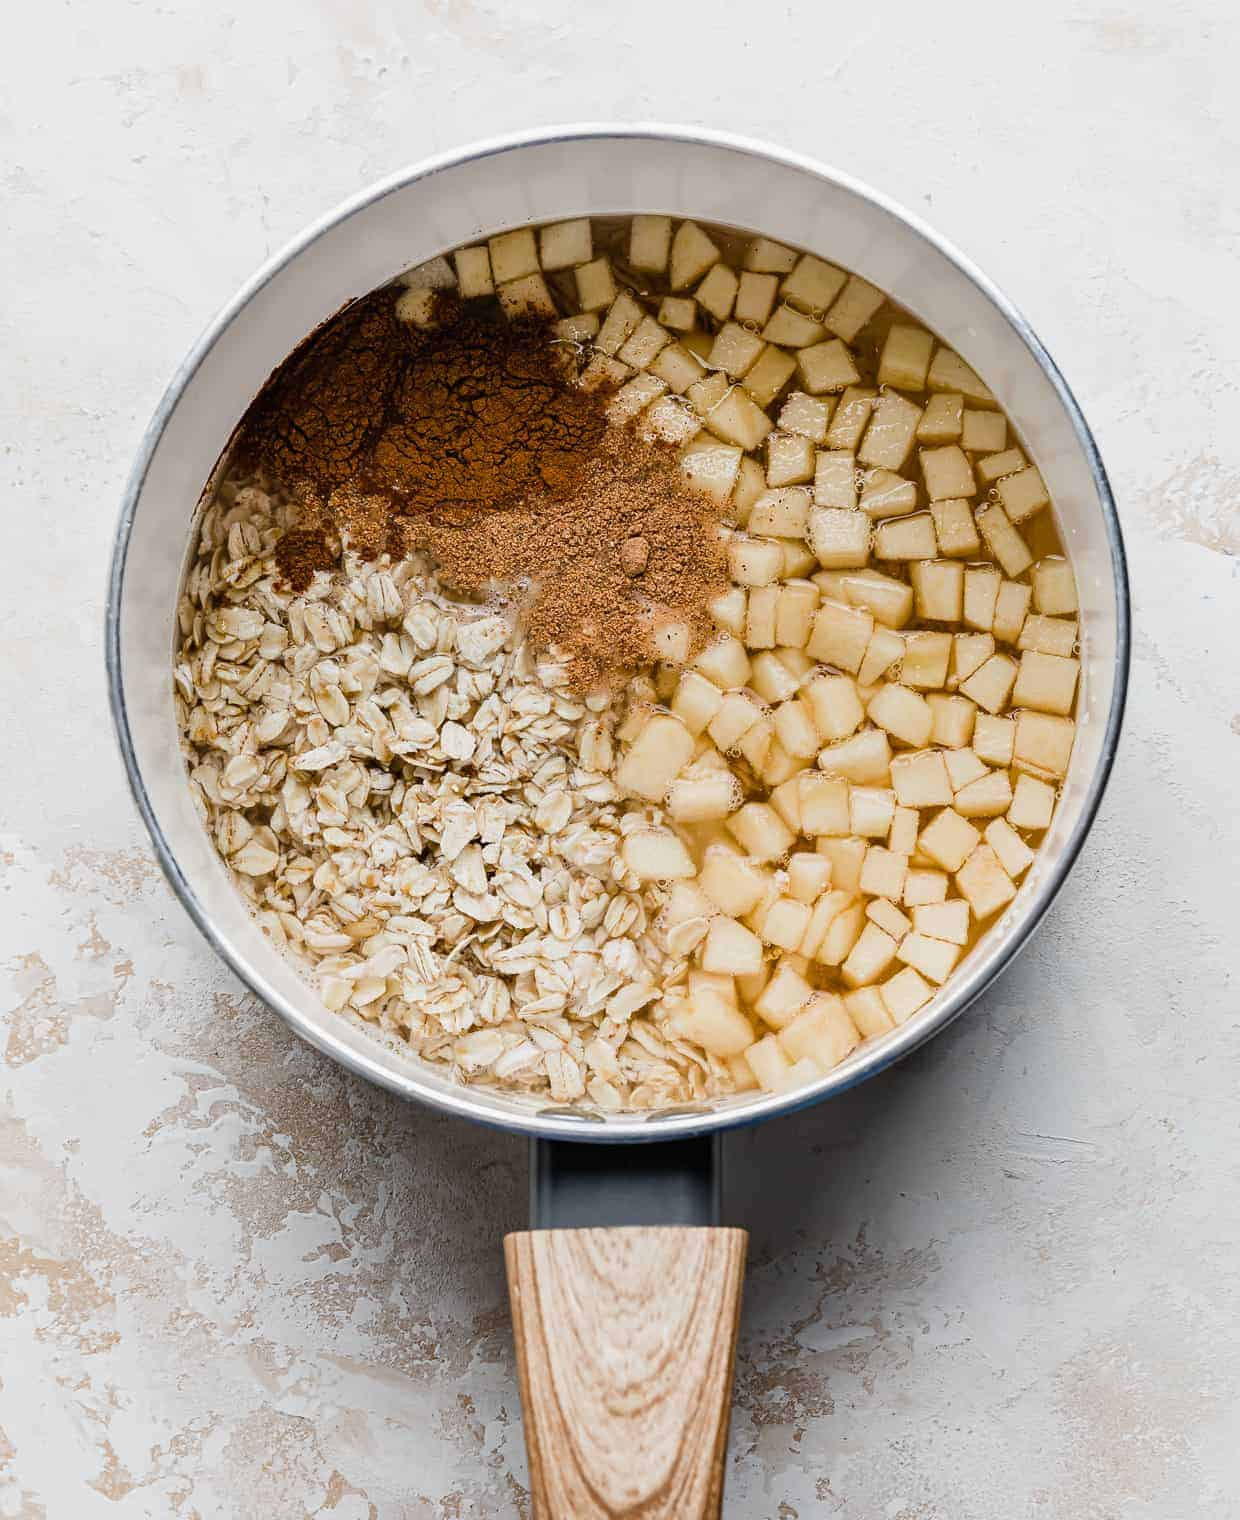 A saucepan with diced apples, water, oats, and cinnamon.